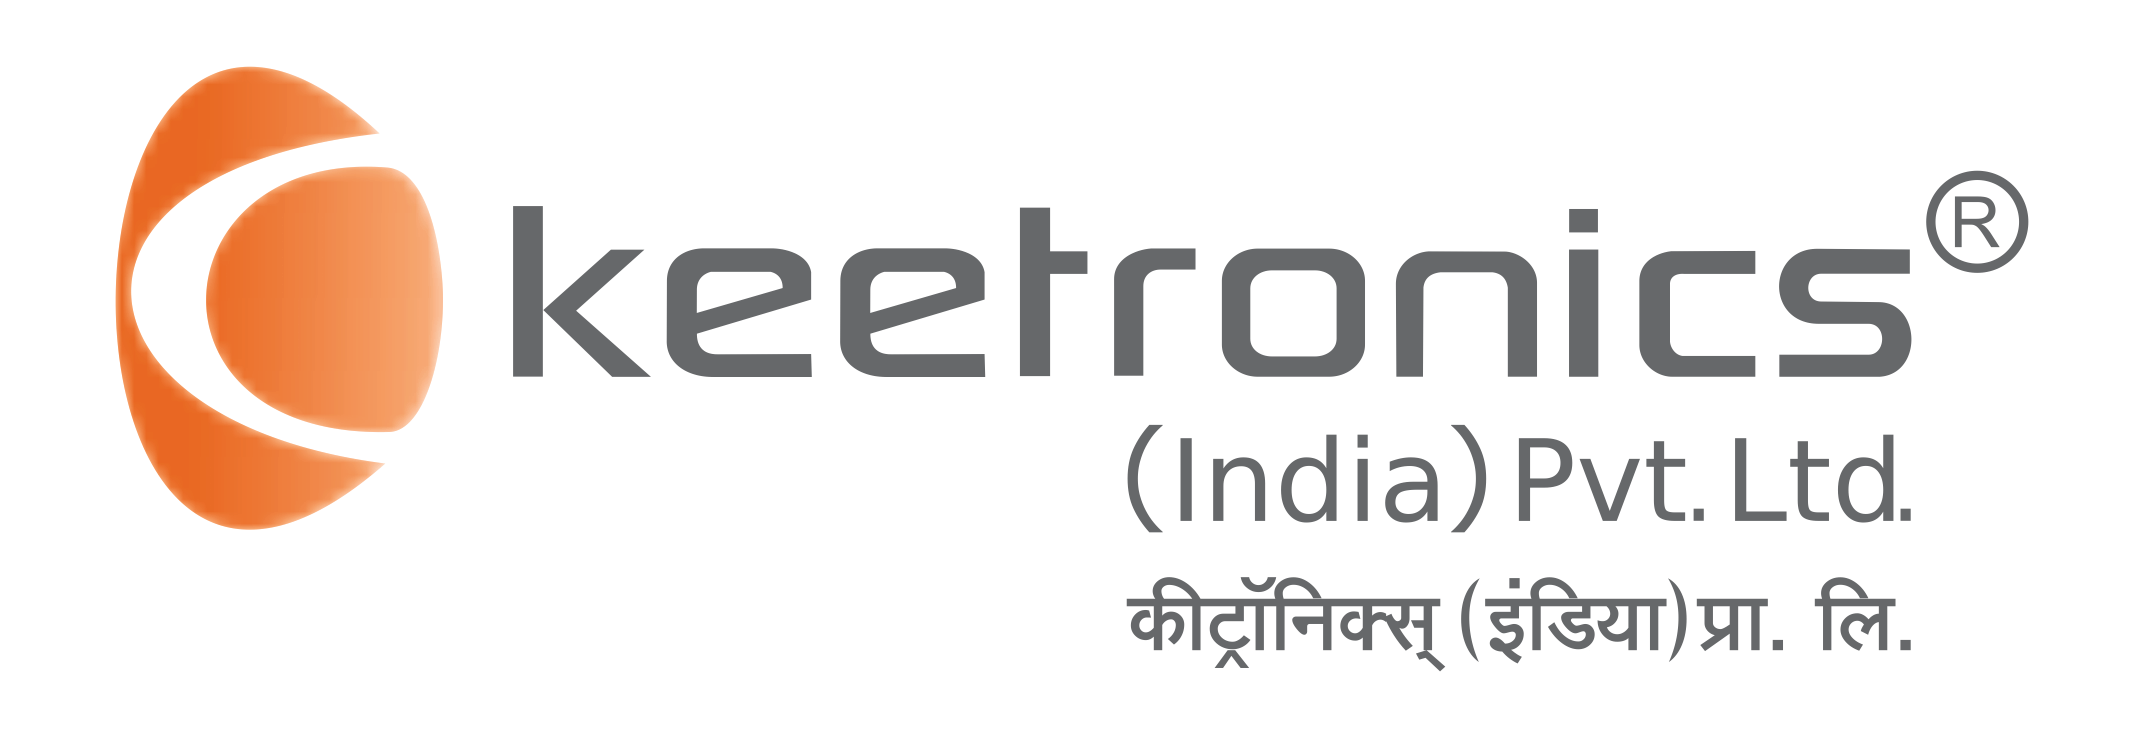 Keetronics (India) Pvt. Ltd.